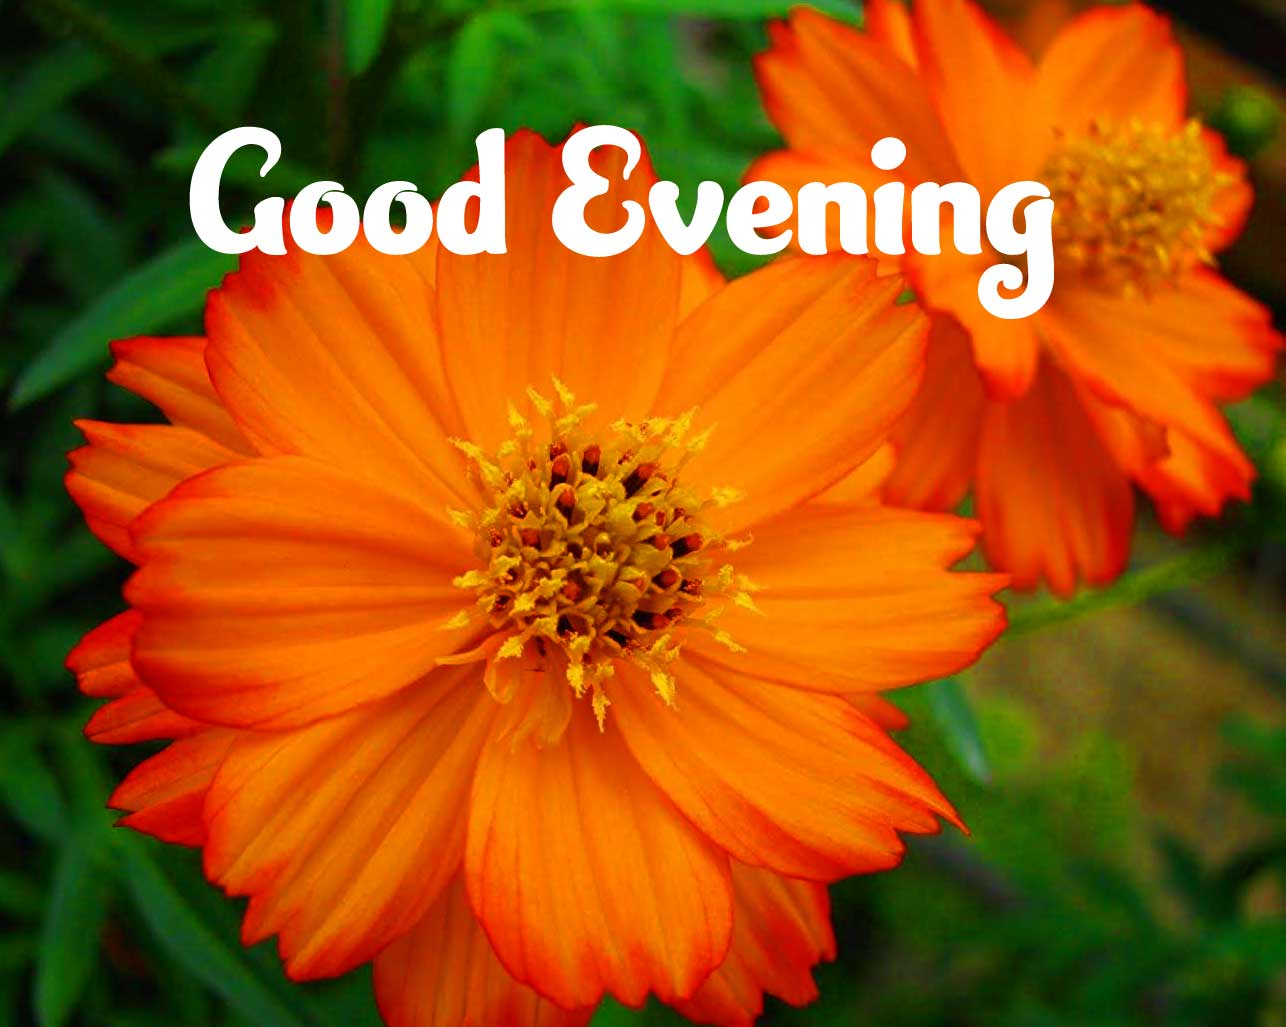 Good Evening Wishes Images Wallpaper HD Download